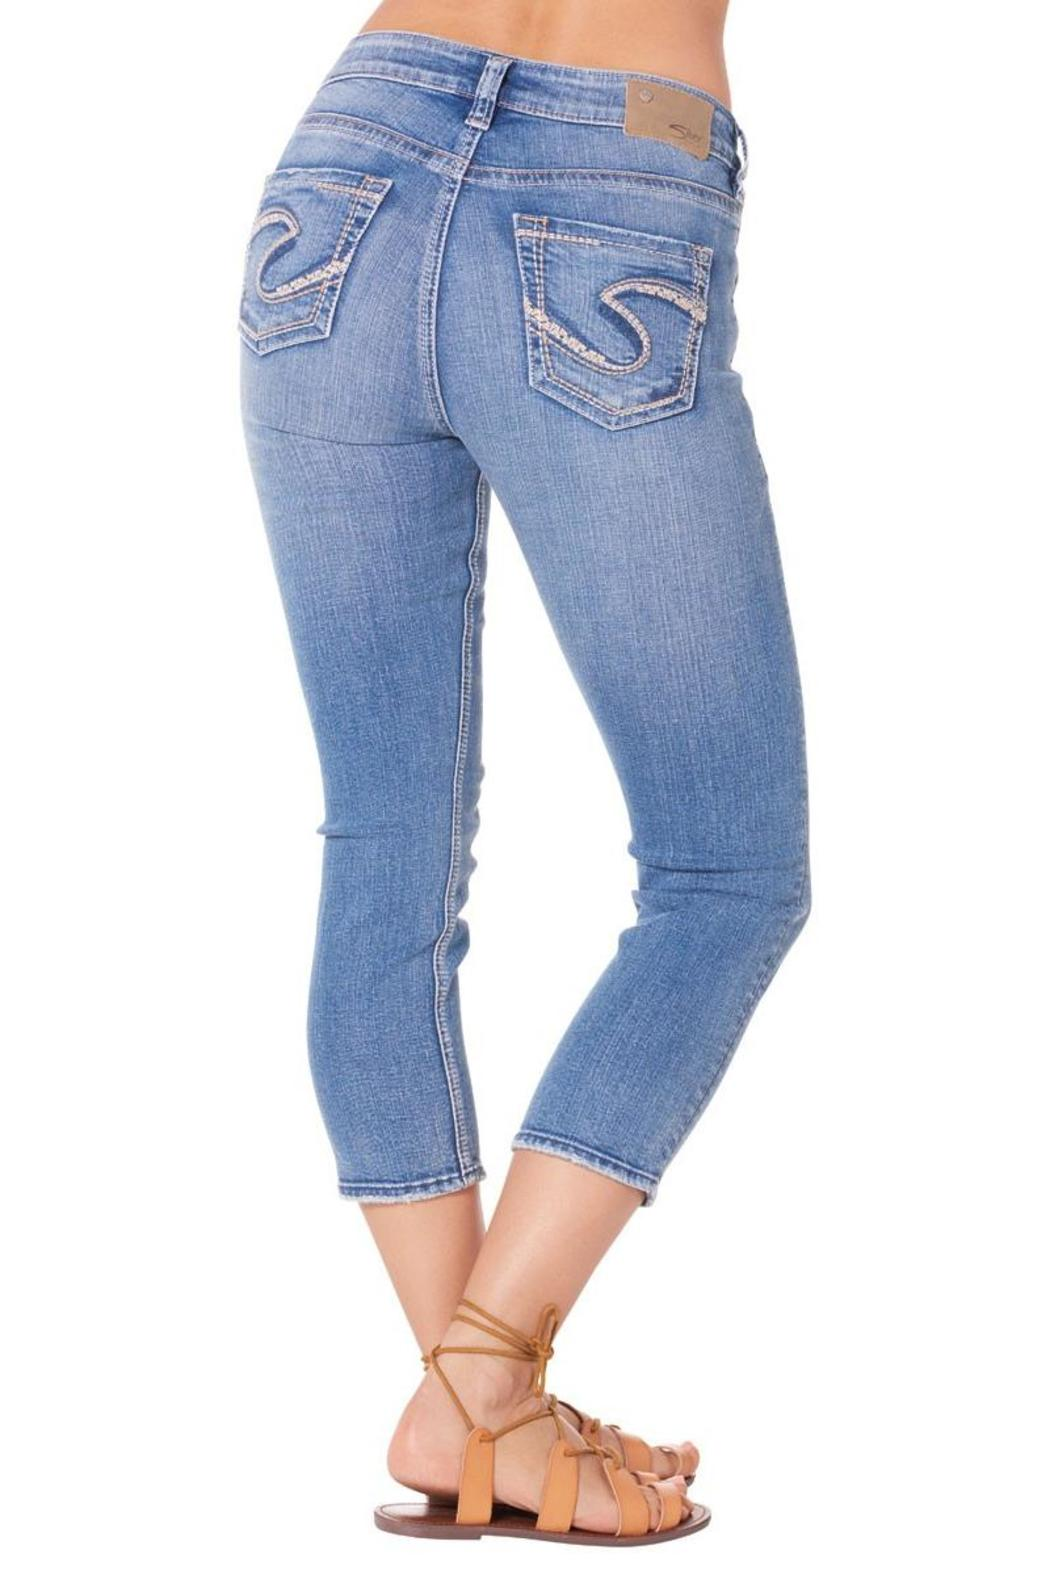 Silver Jeans Co. Suki High Capri Jeans - Side Cropped Image